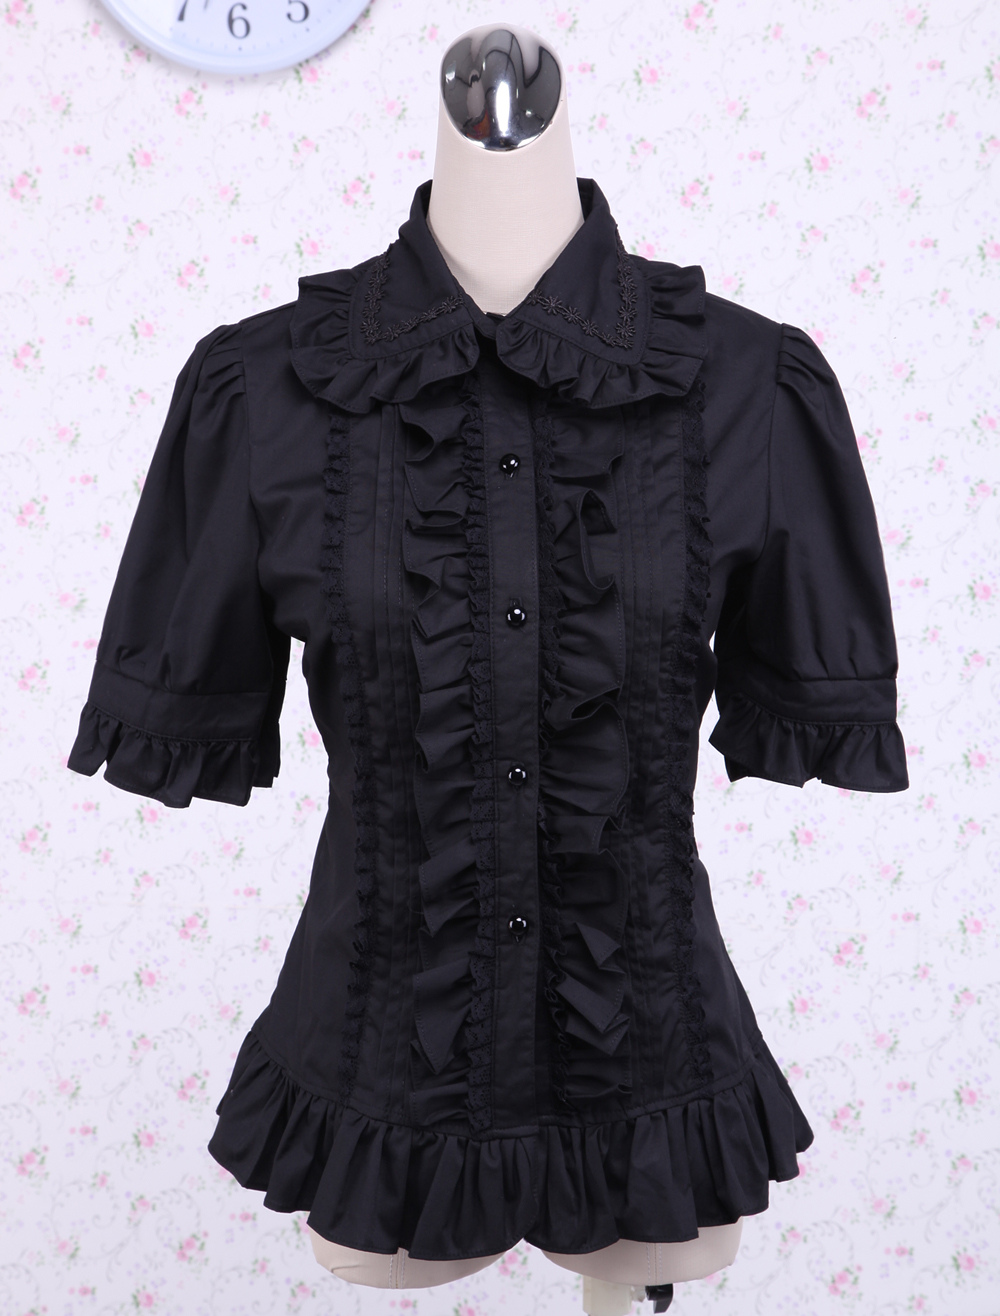 Cotton Black Ruffle Lolita Blouse $33.99 AT vintagedancer.com